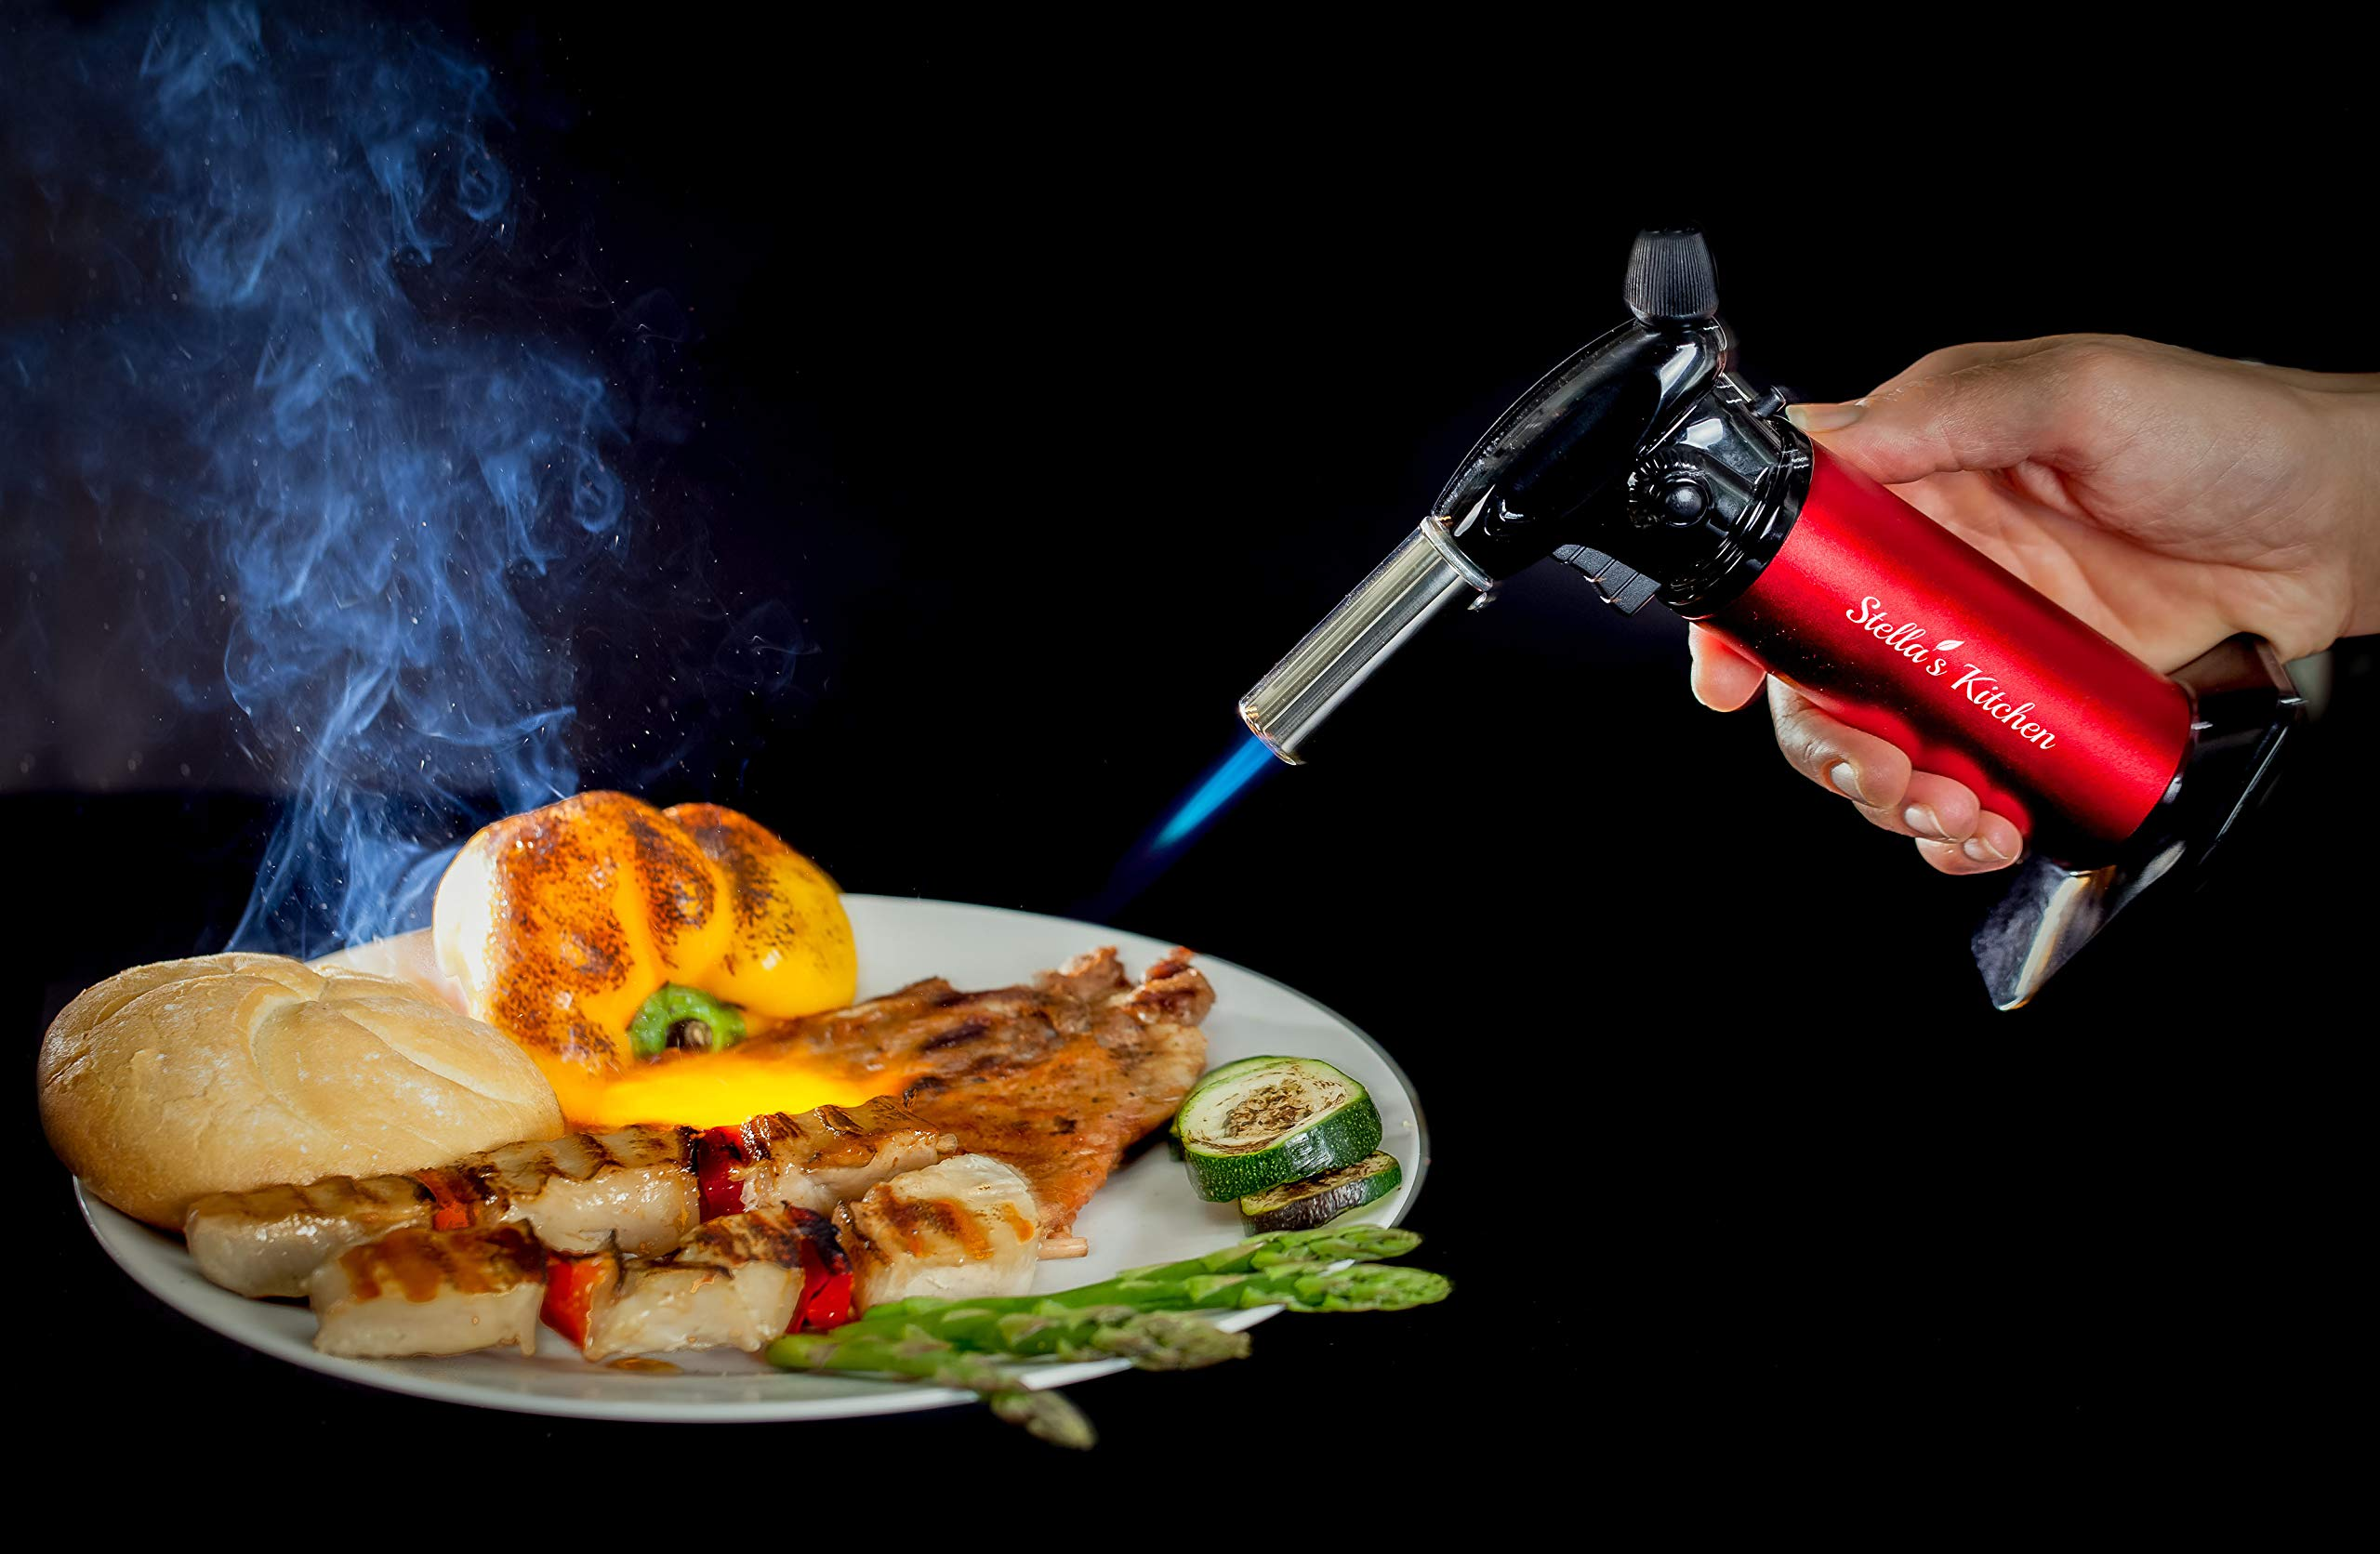 Culinary Torch for Creme Brulee 5 Pack-Culinary Torch-Refillable Butane Torch-Blow Torch-Cooking Torch - Butane Food Torch- Torch for Dabs with Fuel Gauge&Adjustable Flame-Chefs Torch- Butane Torch by Stella's Kitchen (Image #7)